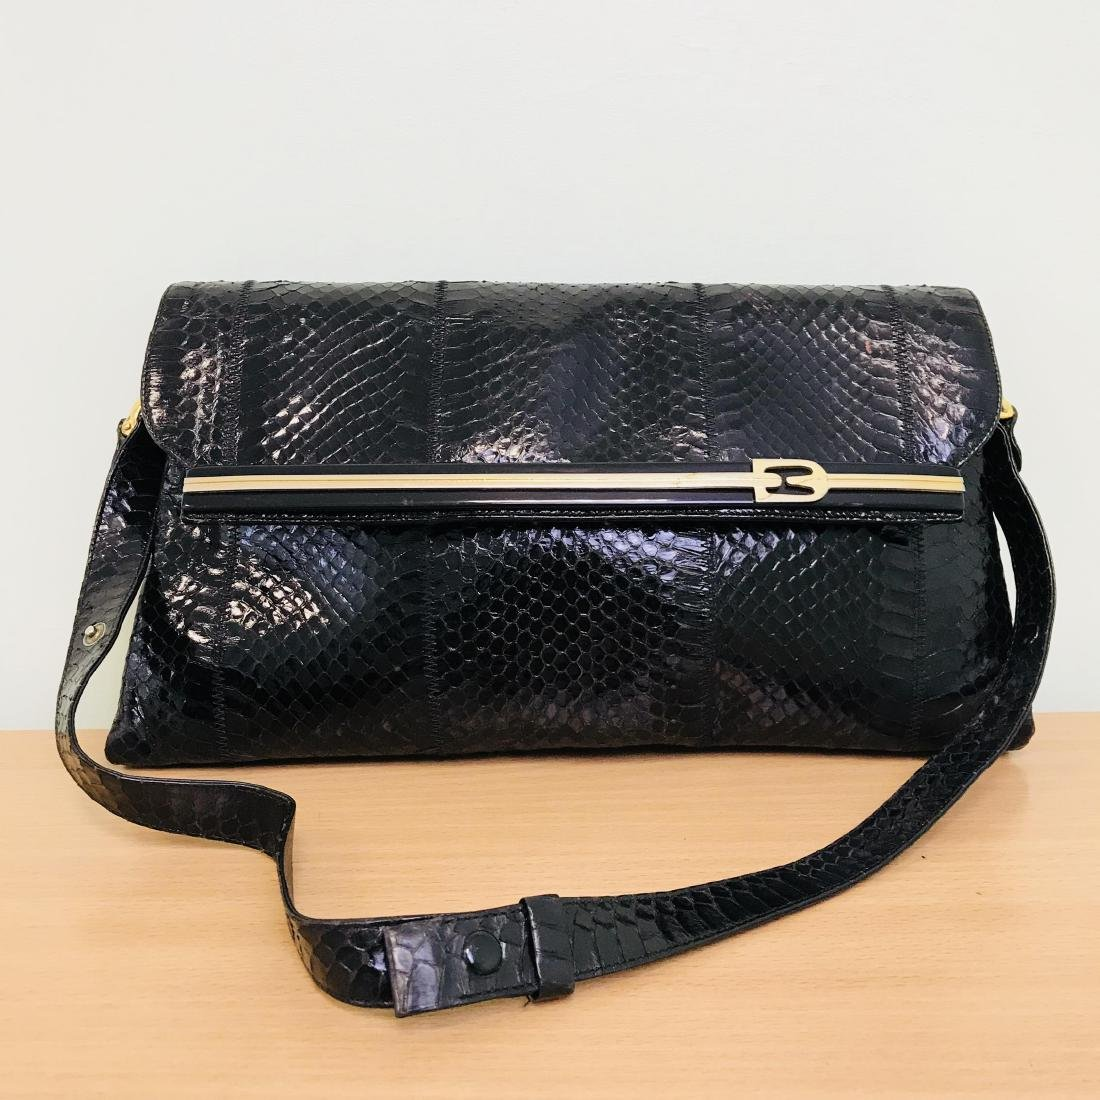 Vintage Handmade Snake Skin Shoulder Bag Made in Italy!